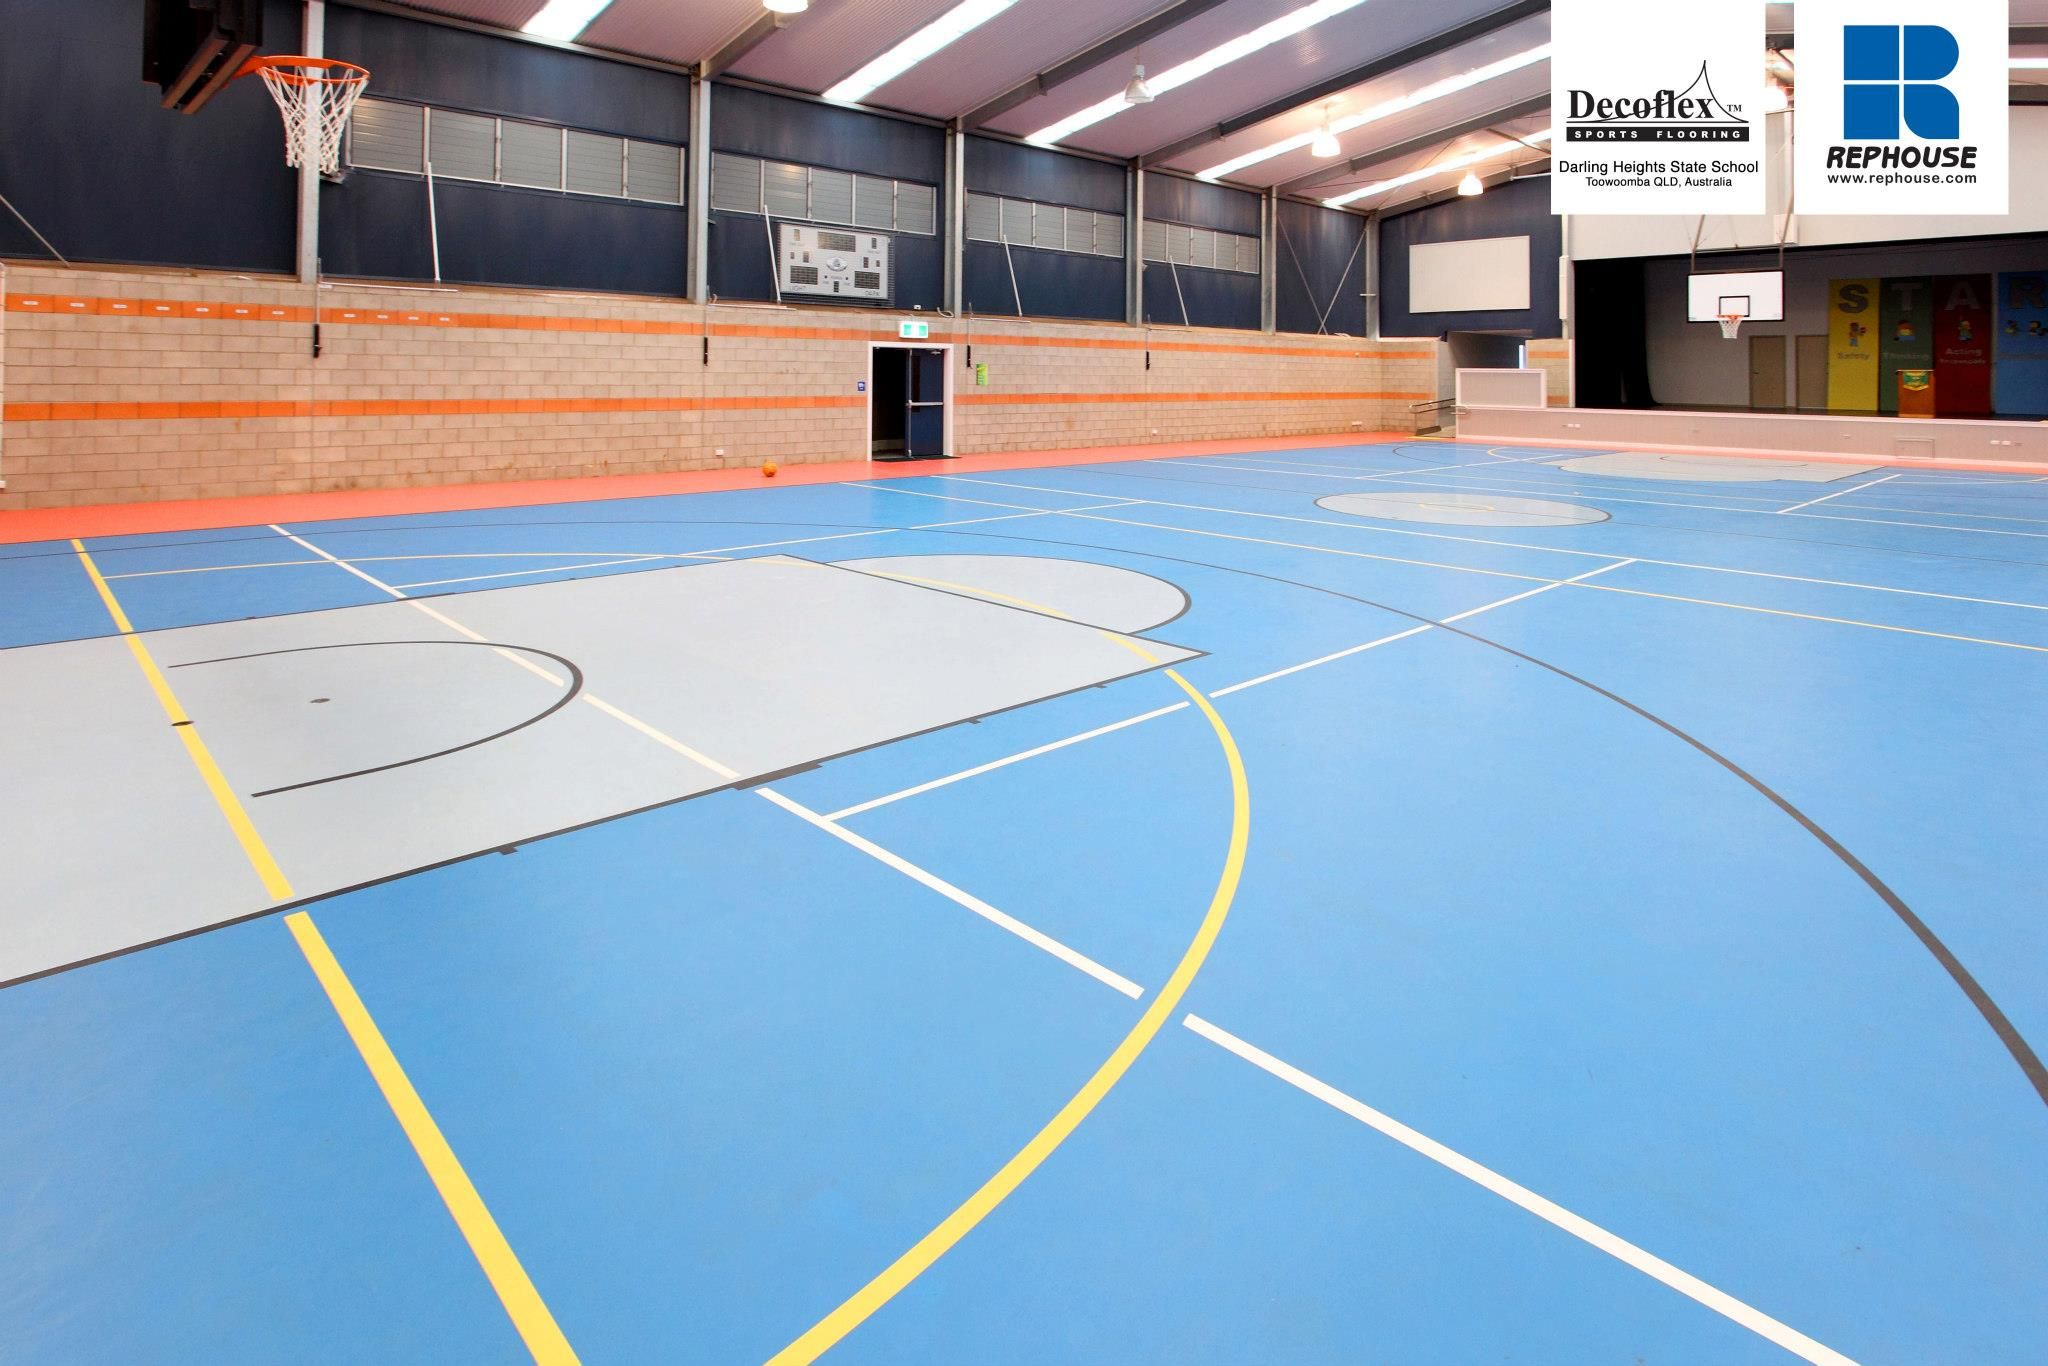 Decoflex Universal Seamless Polyurethane Indoor Sports Flooring Darling Heights State School